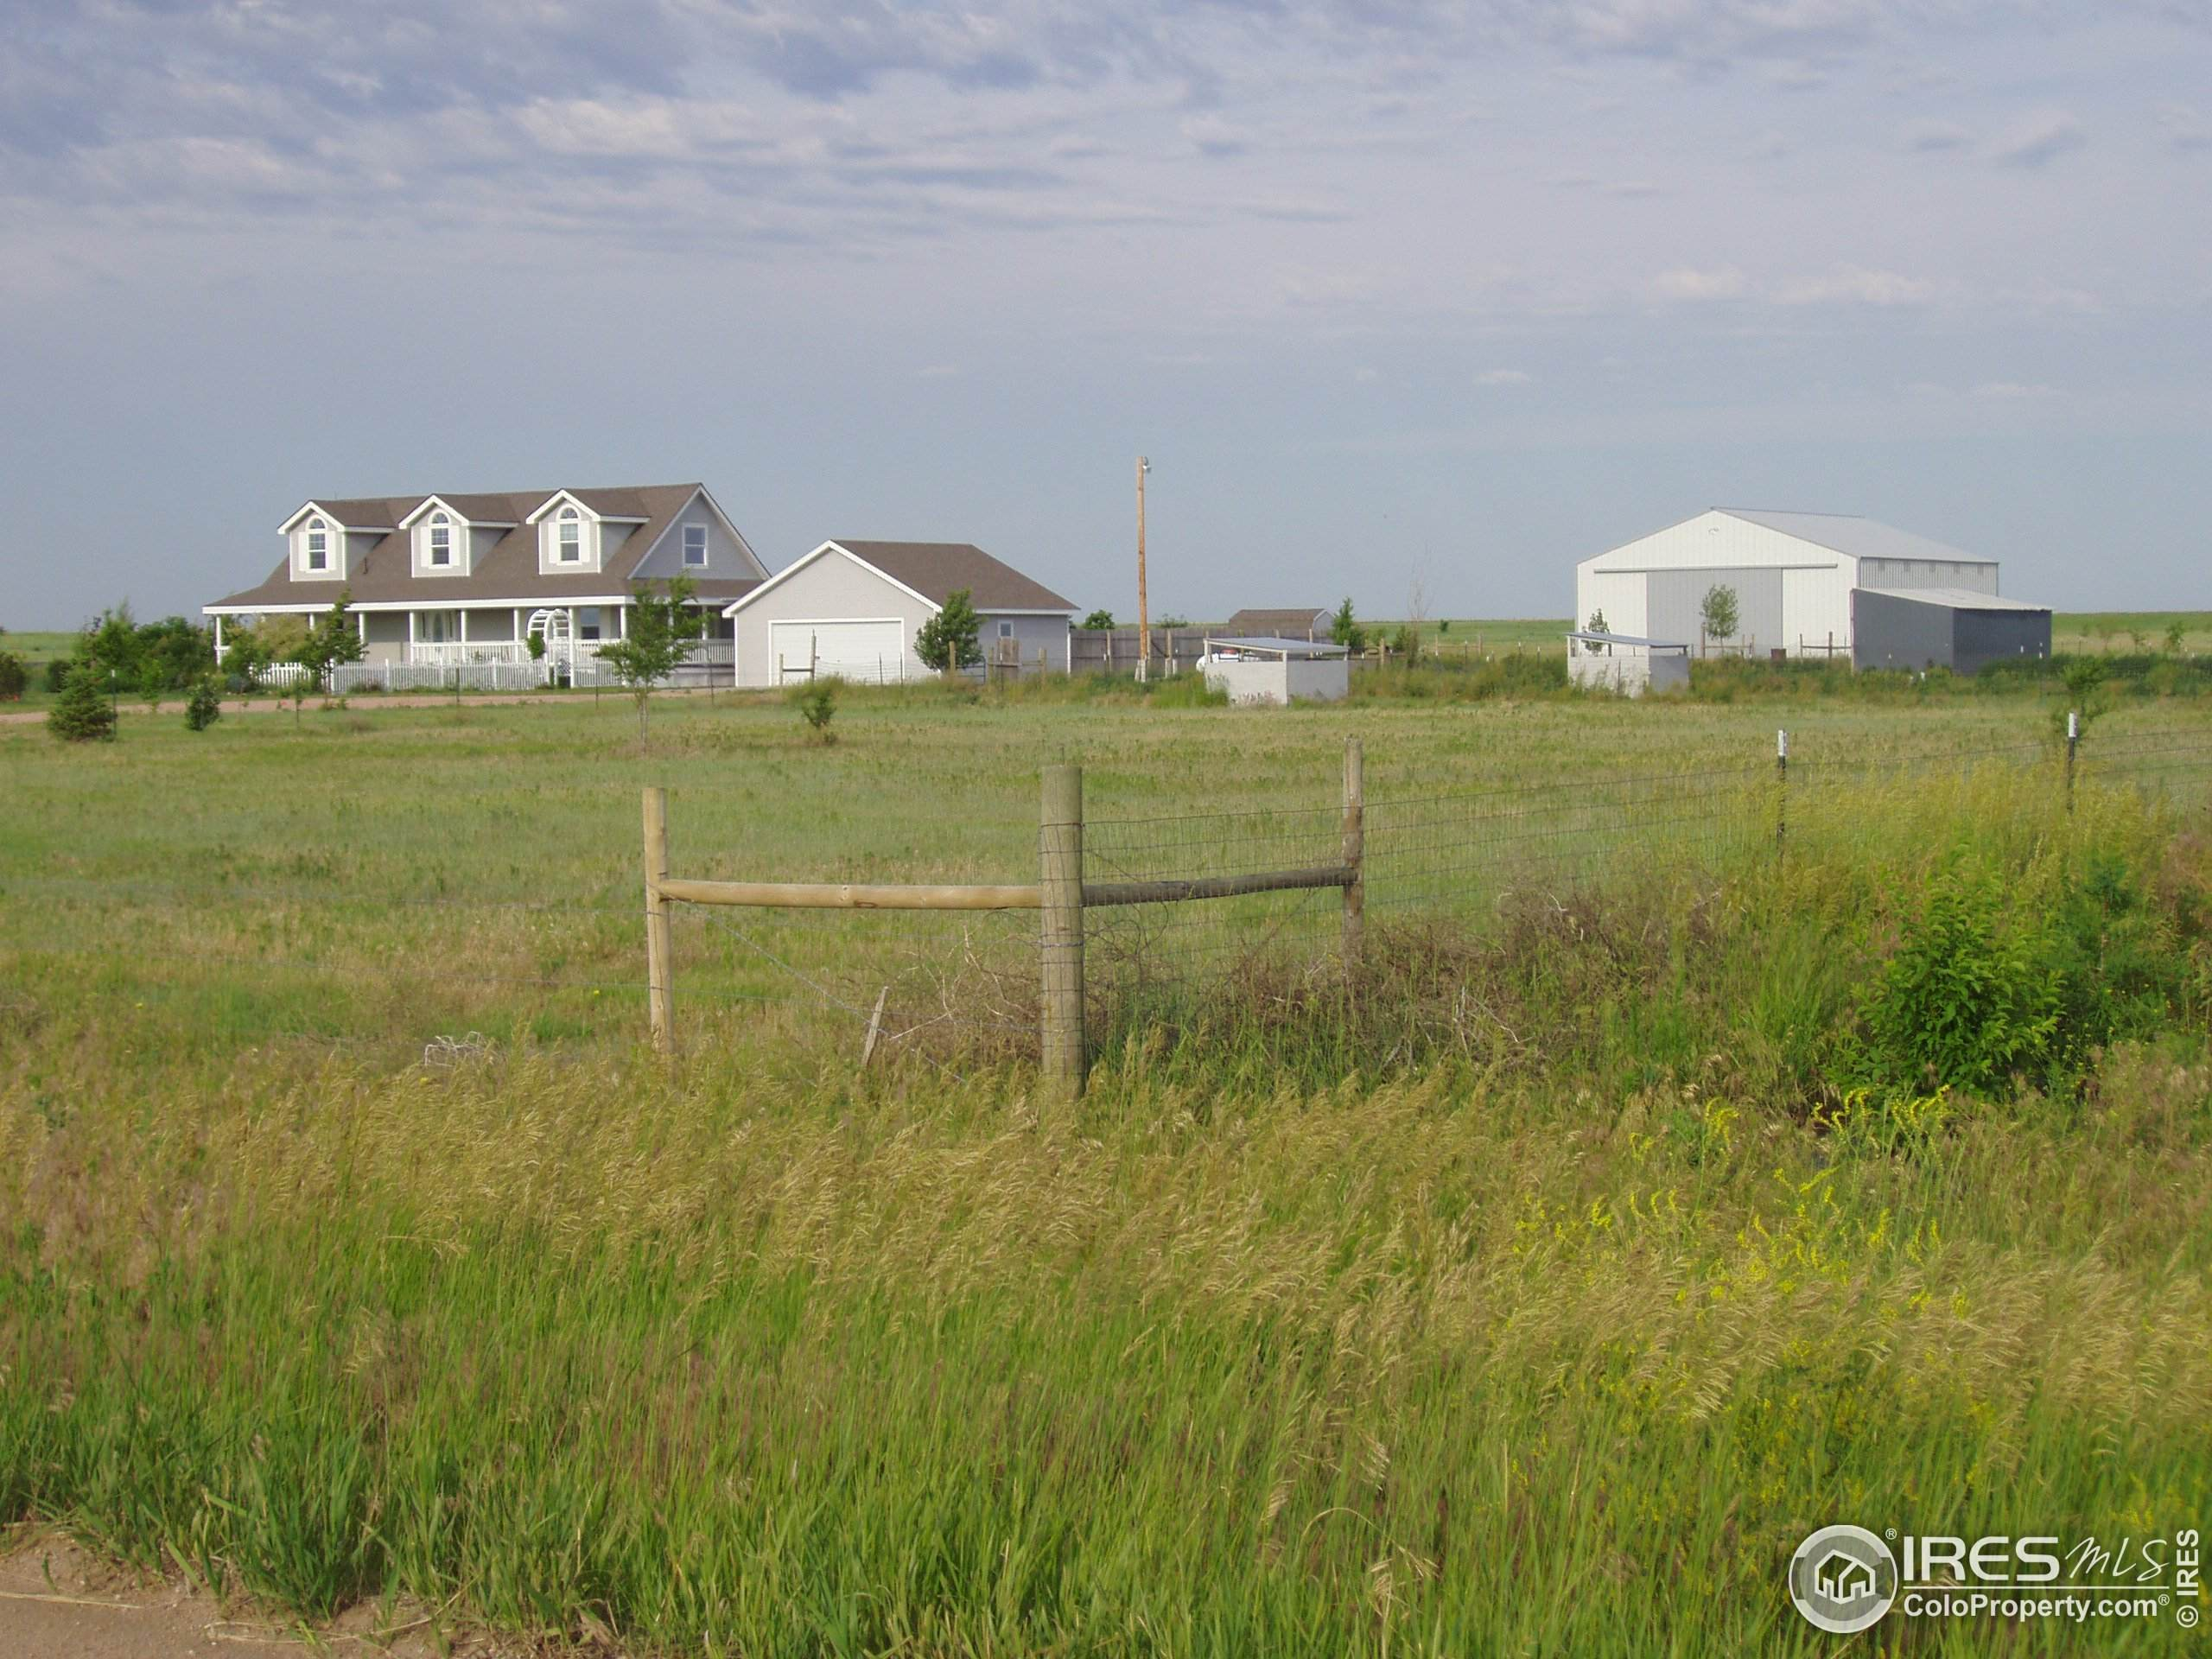 208 Painted Horse Way, Erie, CO 80516 (MLS #927723) :: Tracy's Team